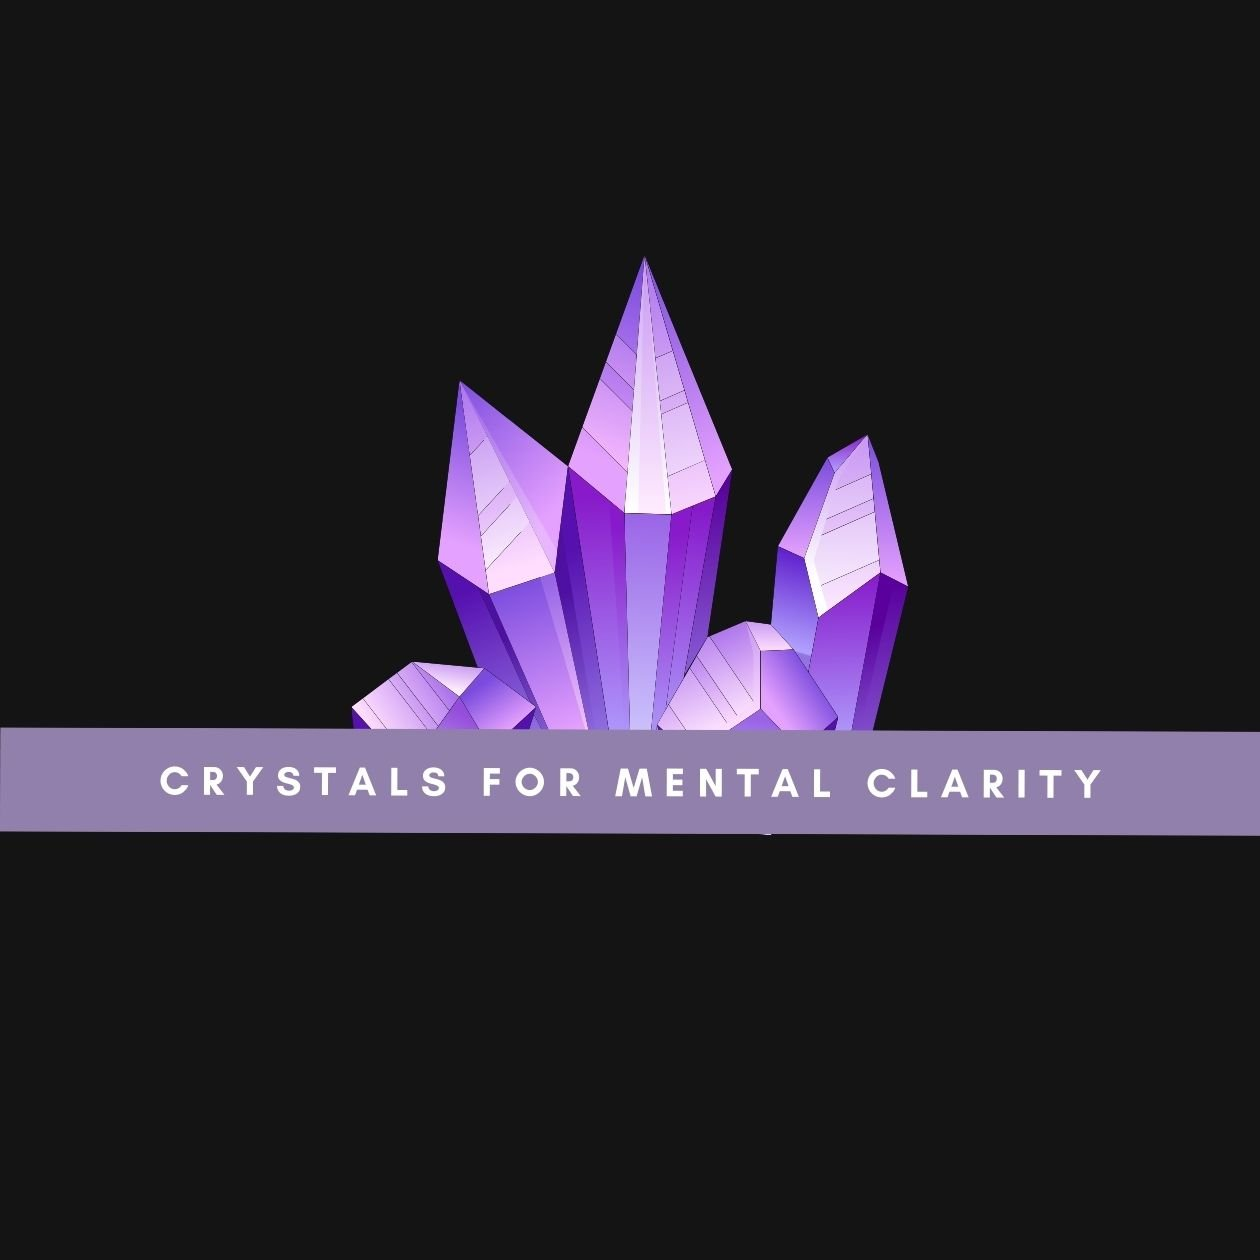 Crystals for mental clarity: an illustration